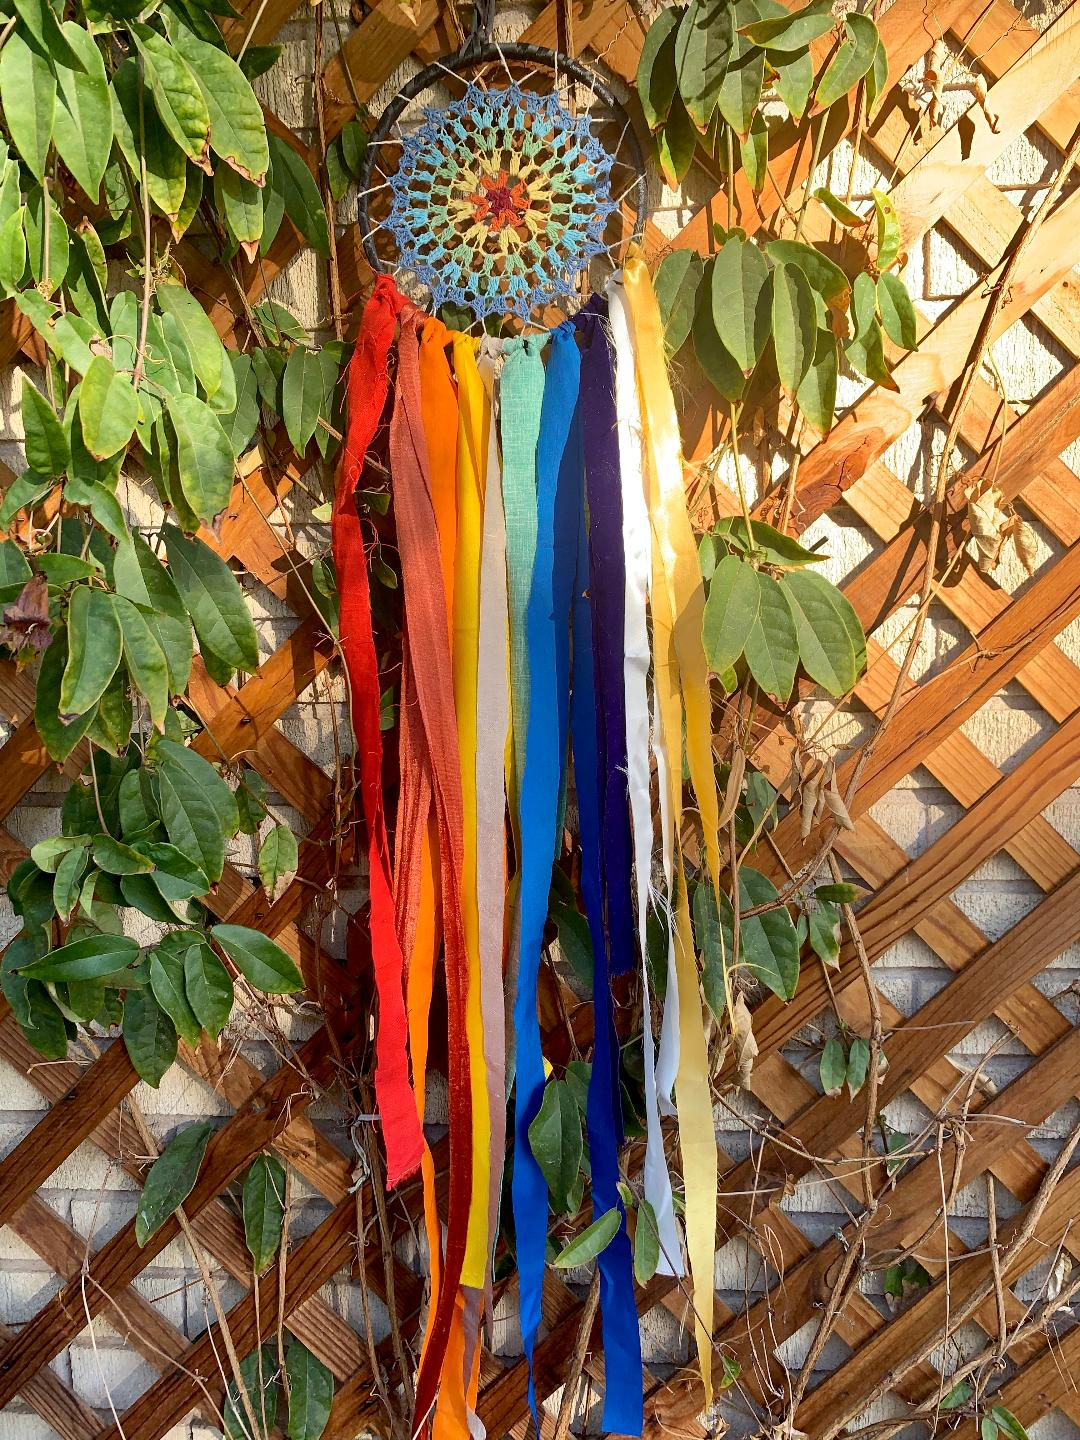 Rainbow Doily Manisha Wish Dream Catcher Kit